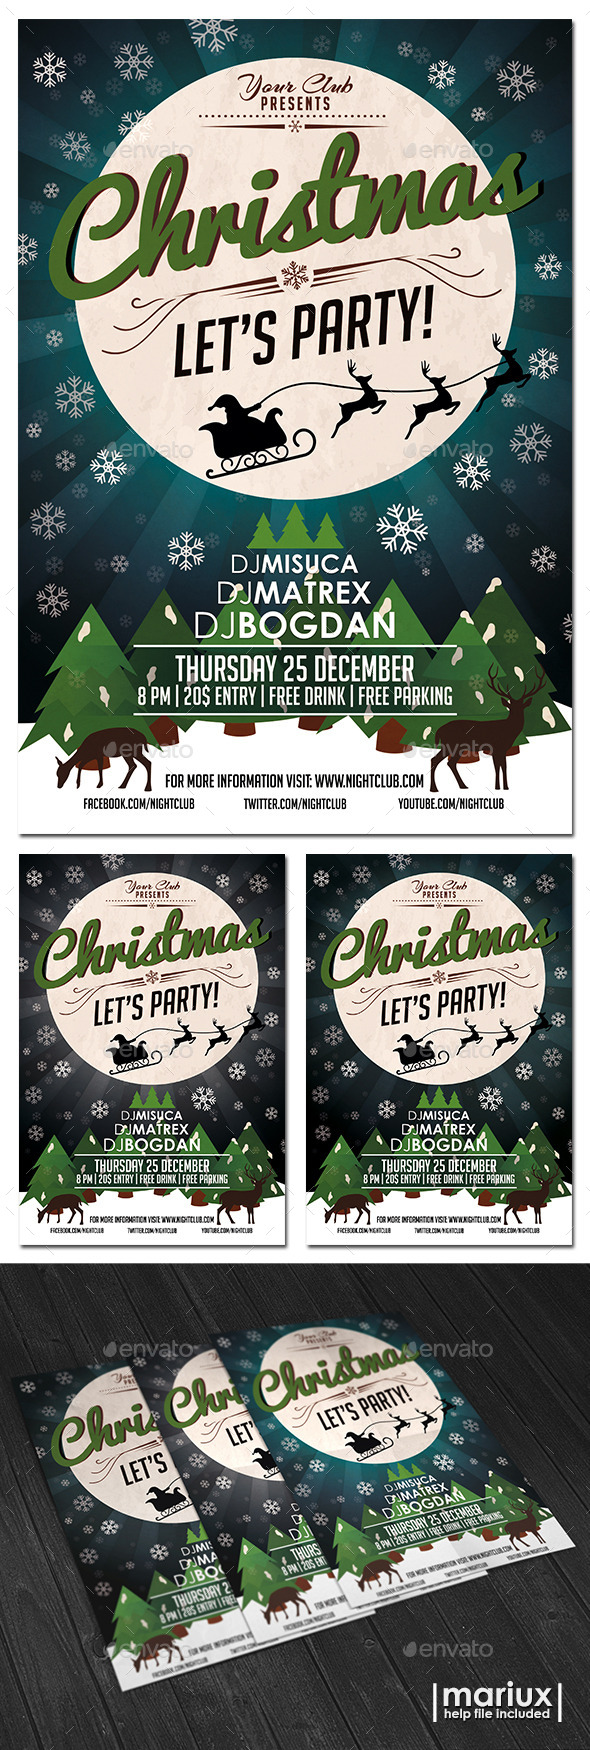 GraphicRiver Christmas Party Flyer 9725436